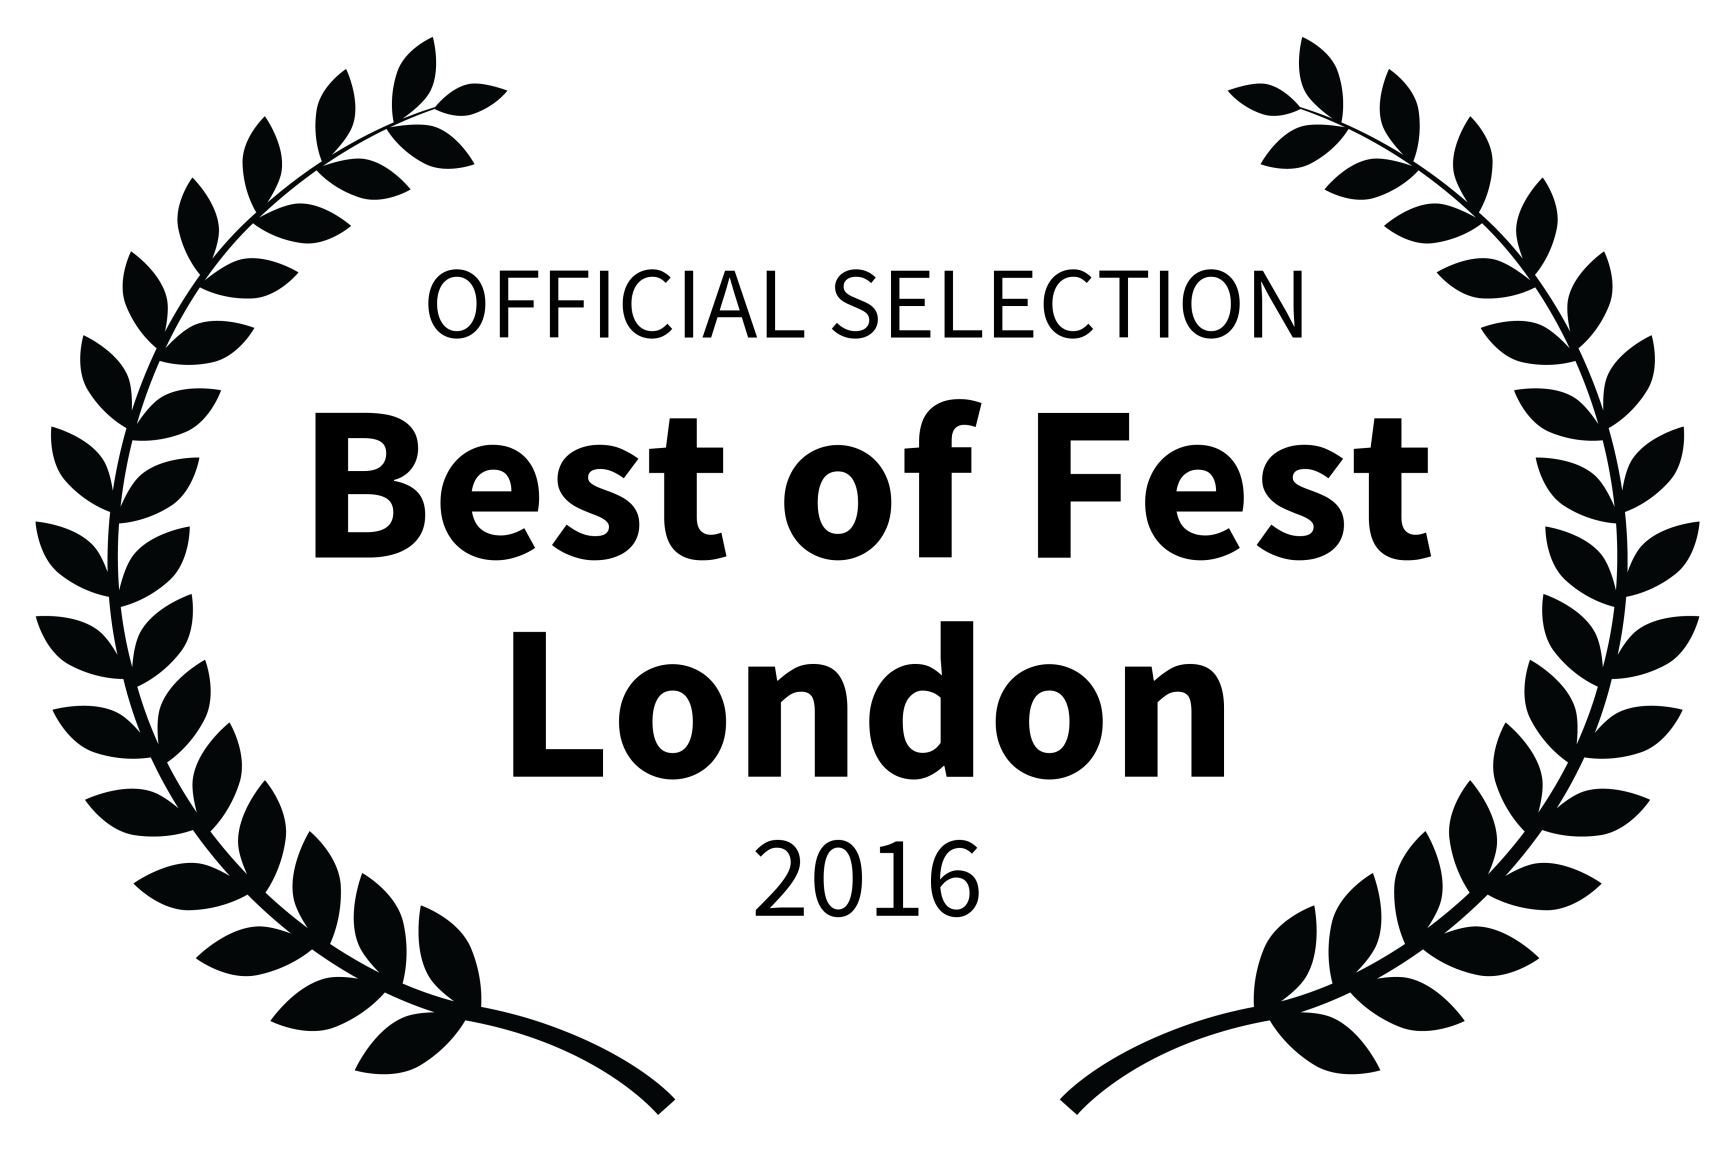 OFFICIAL SELECTION - Best of Fest London